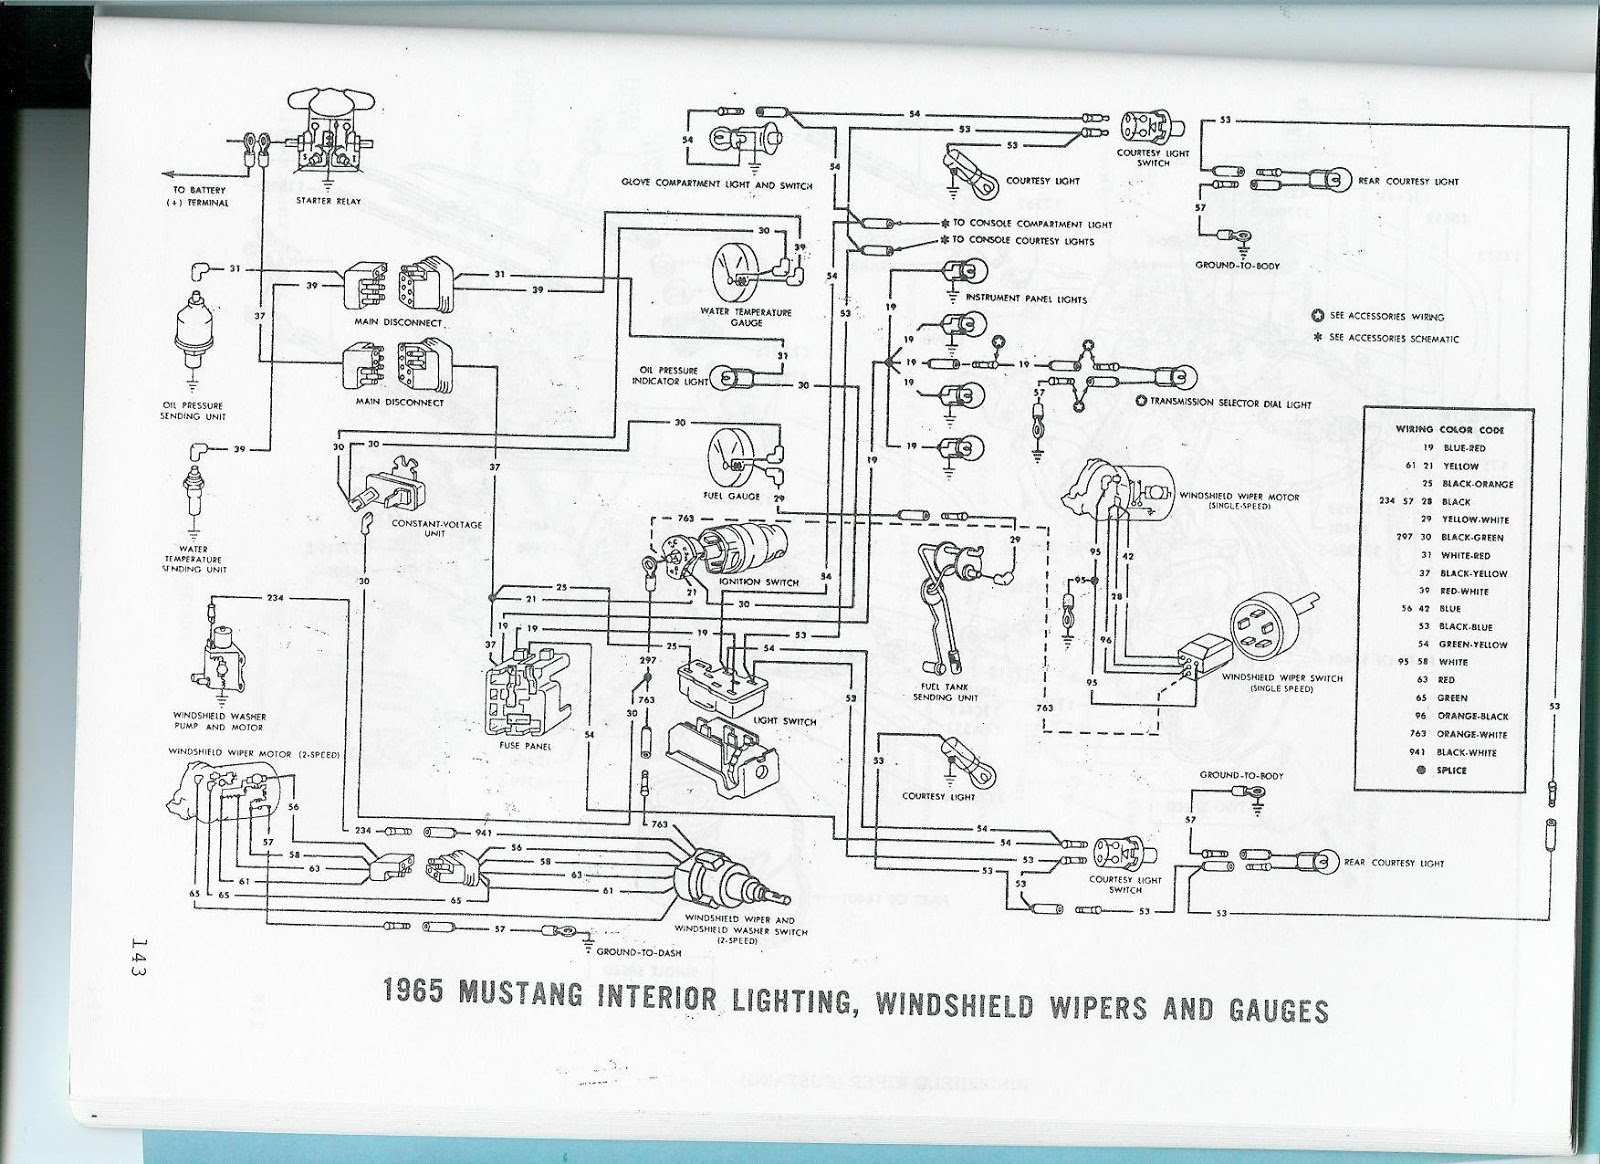 66 Chevelle Wiring Diagram Just Another Blog 1966 Chevrolet 1964 Mustang Fuse Box Library Rh 32 Akszer Eu